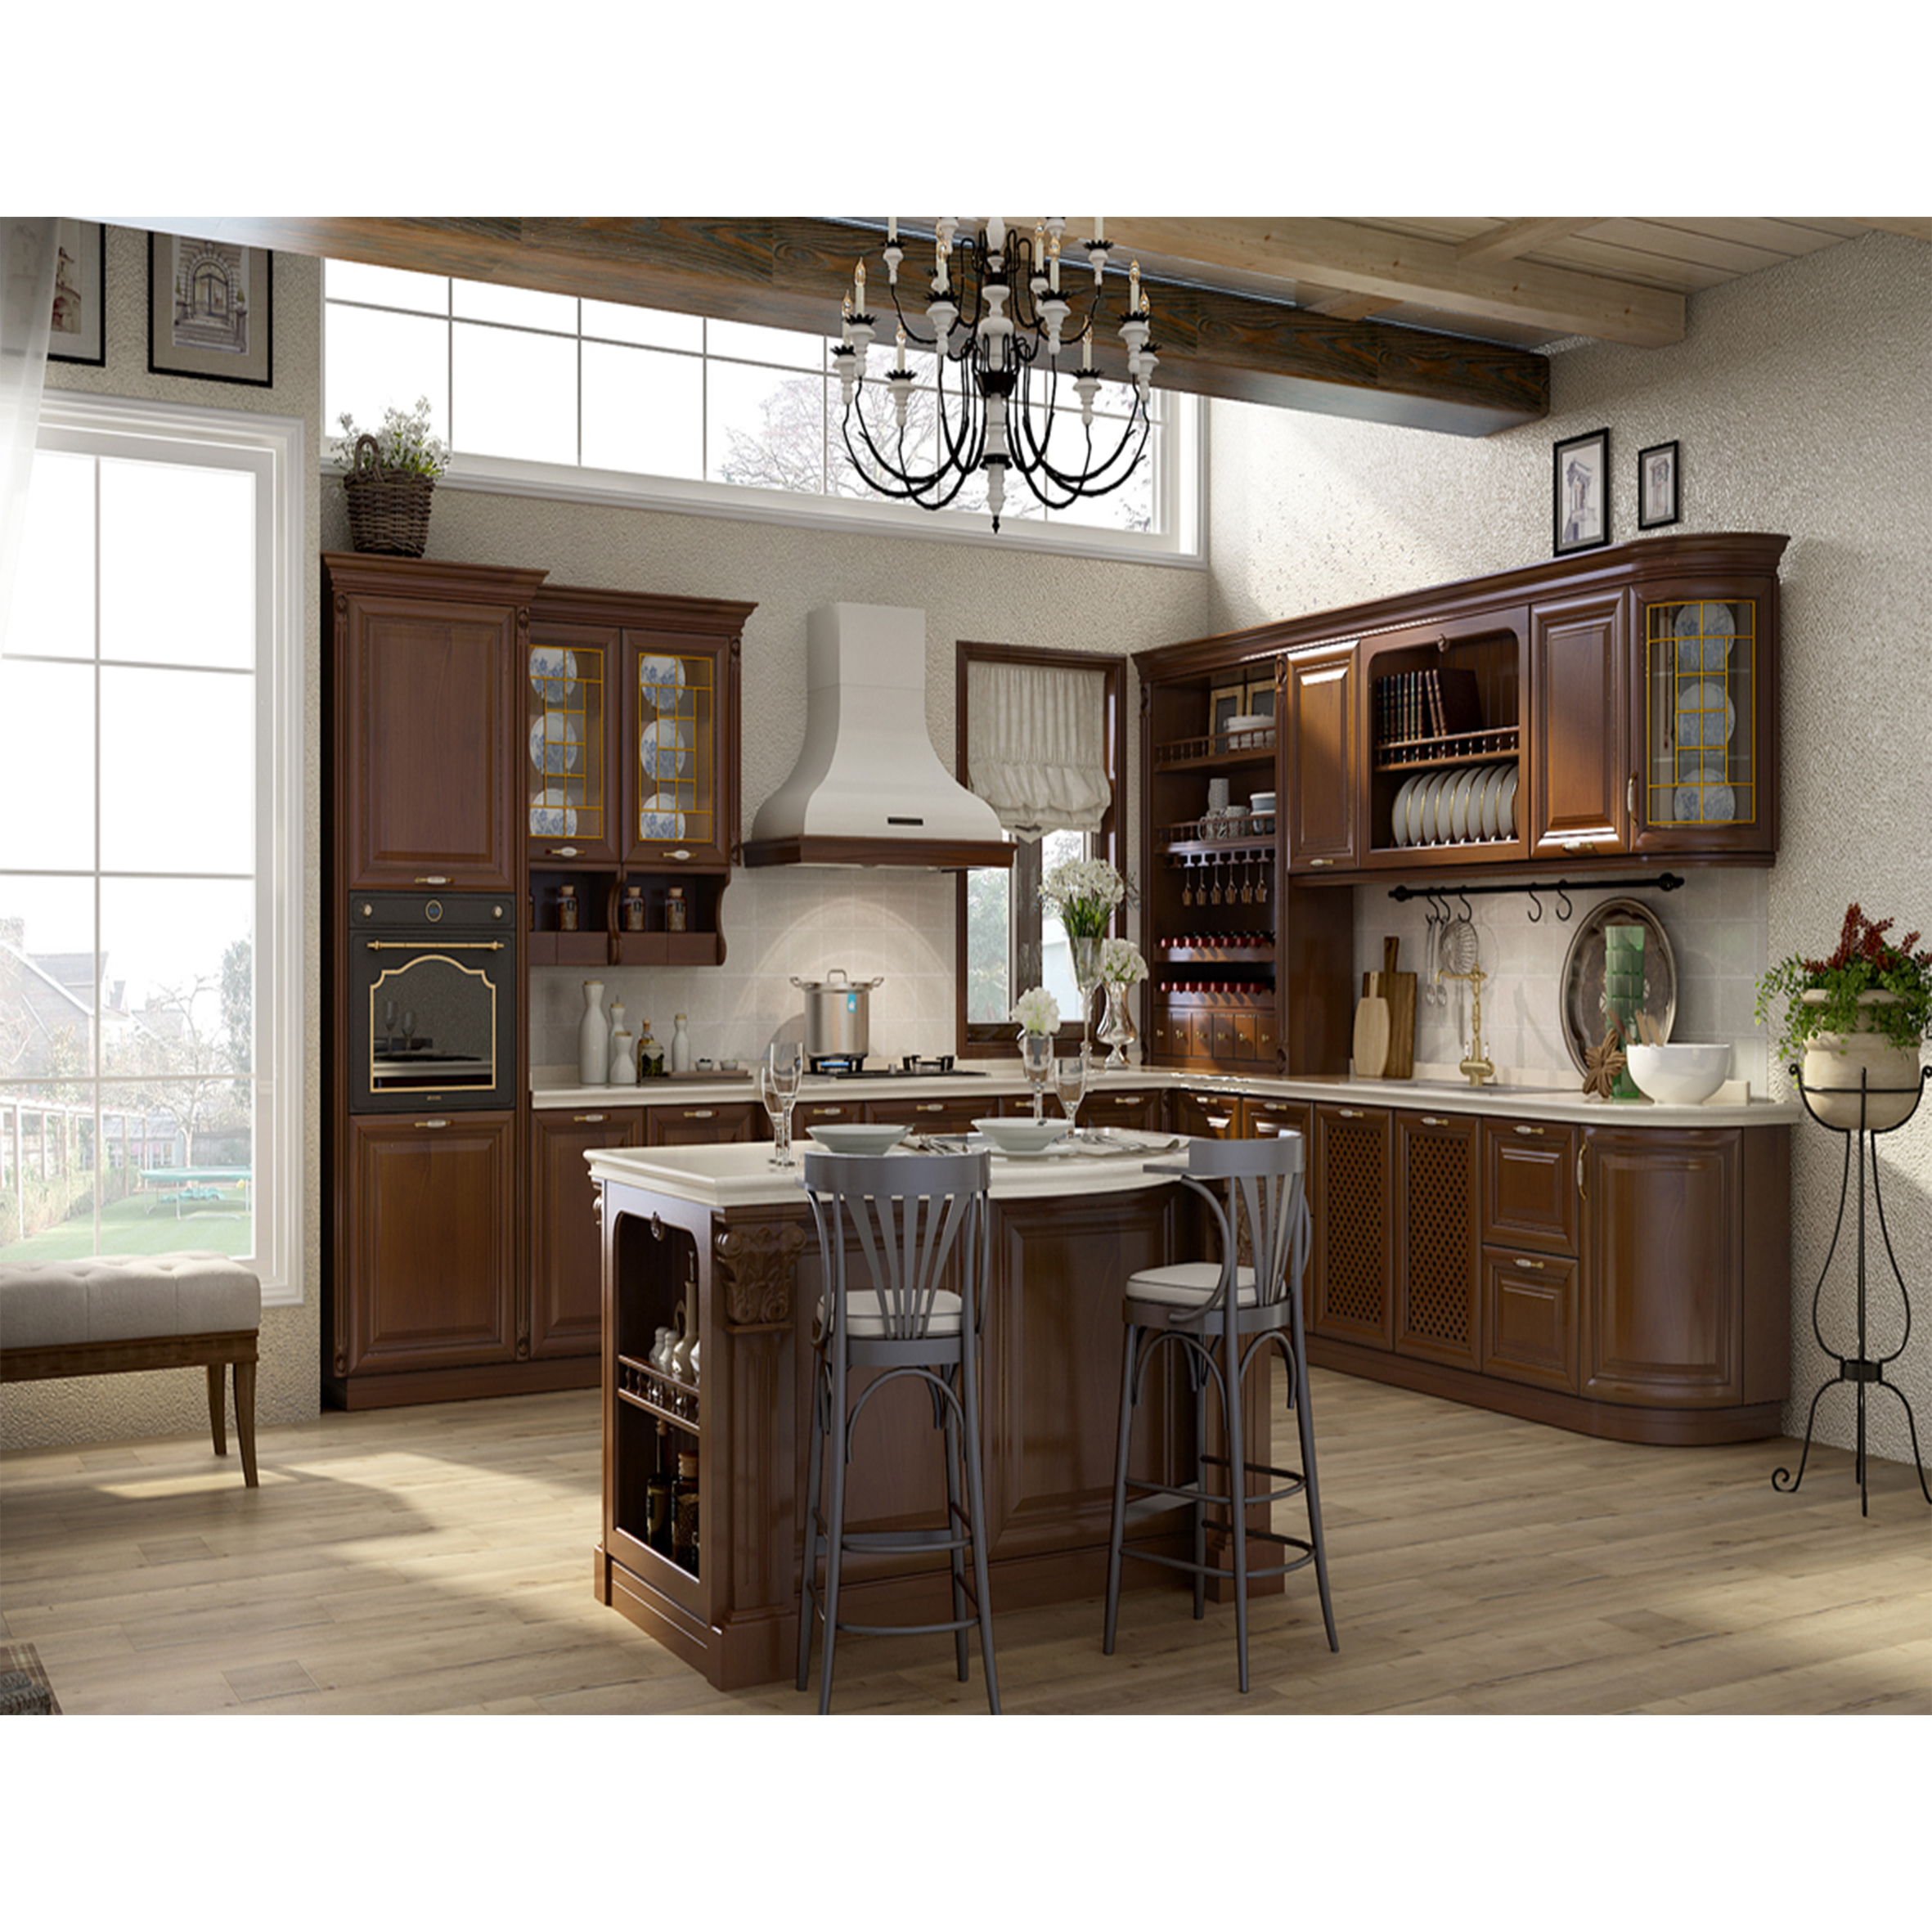 Solid Wood Corner Kitchen Pantry Cabinet American Villa Project Solid Wood Luxury White Kitchen Unit Cabinet Buy Mini Bar Kitchen Cabinet Pvc Kitchen Cabinet Modern Design Mdf Lacquer Kitchen Cabinets Product On Alibaba Com